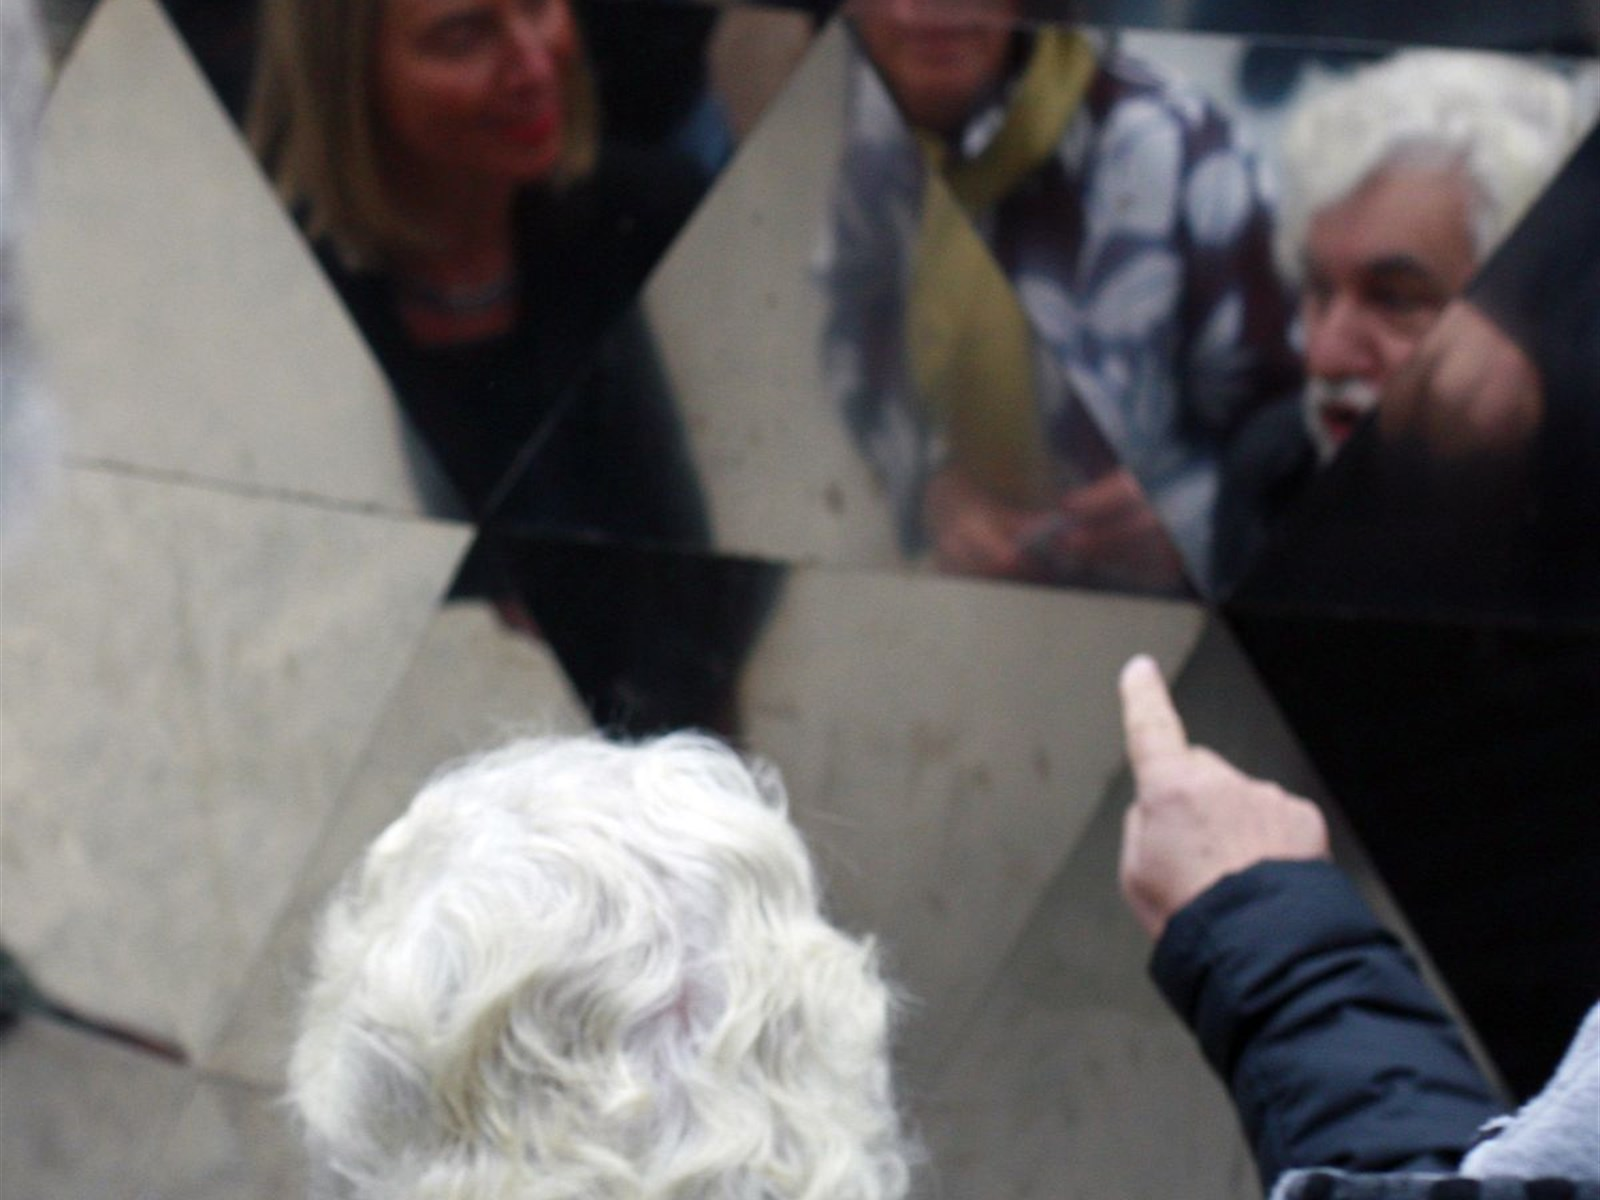 artist Cristobal Gabarron pointing at Federica Mogherini and Barbara Pesce-Monteiro reflection